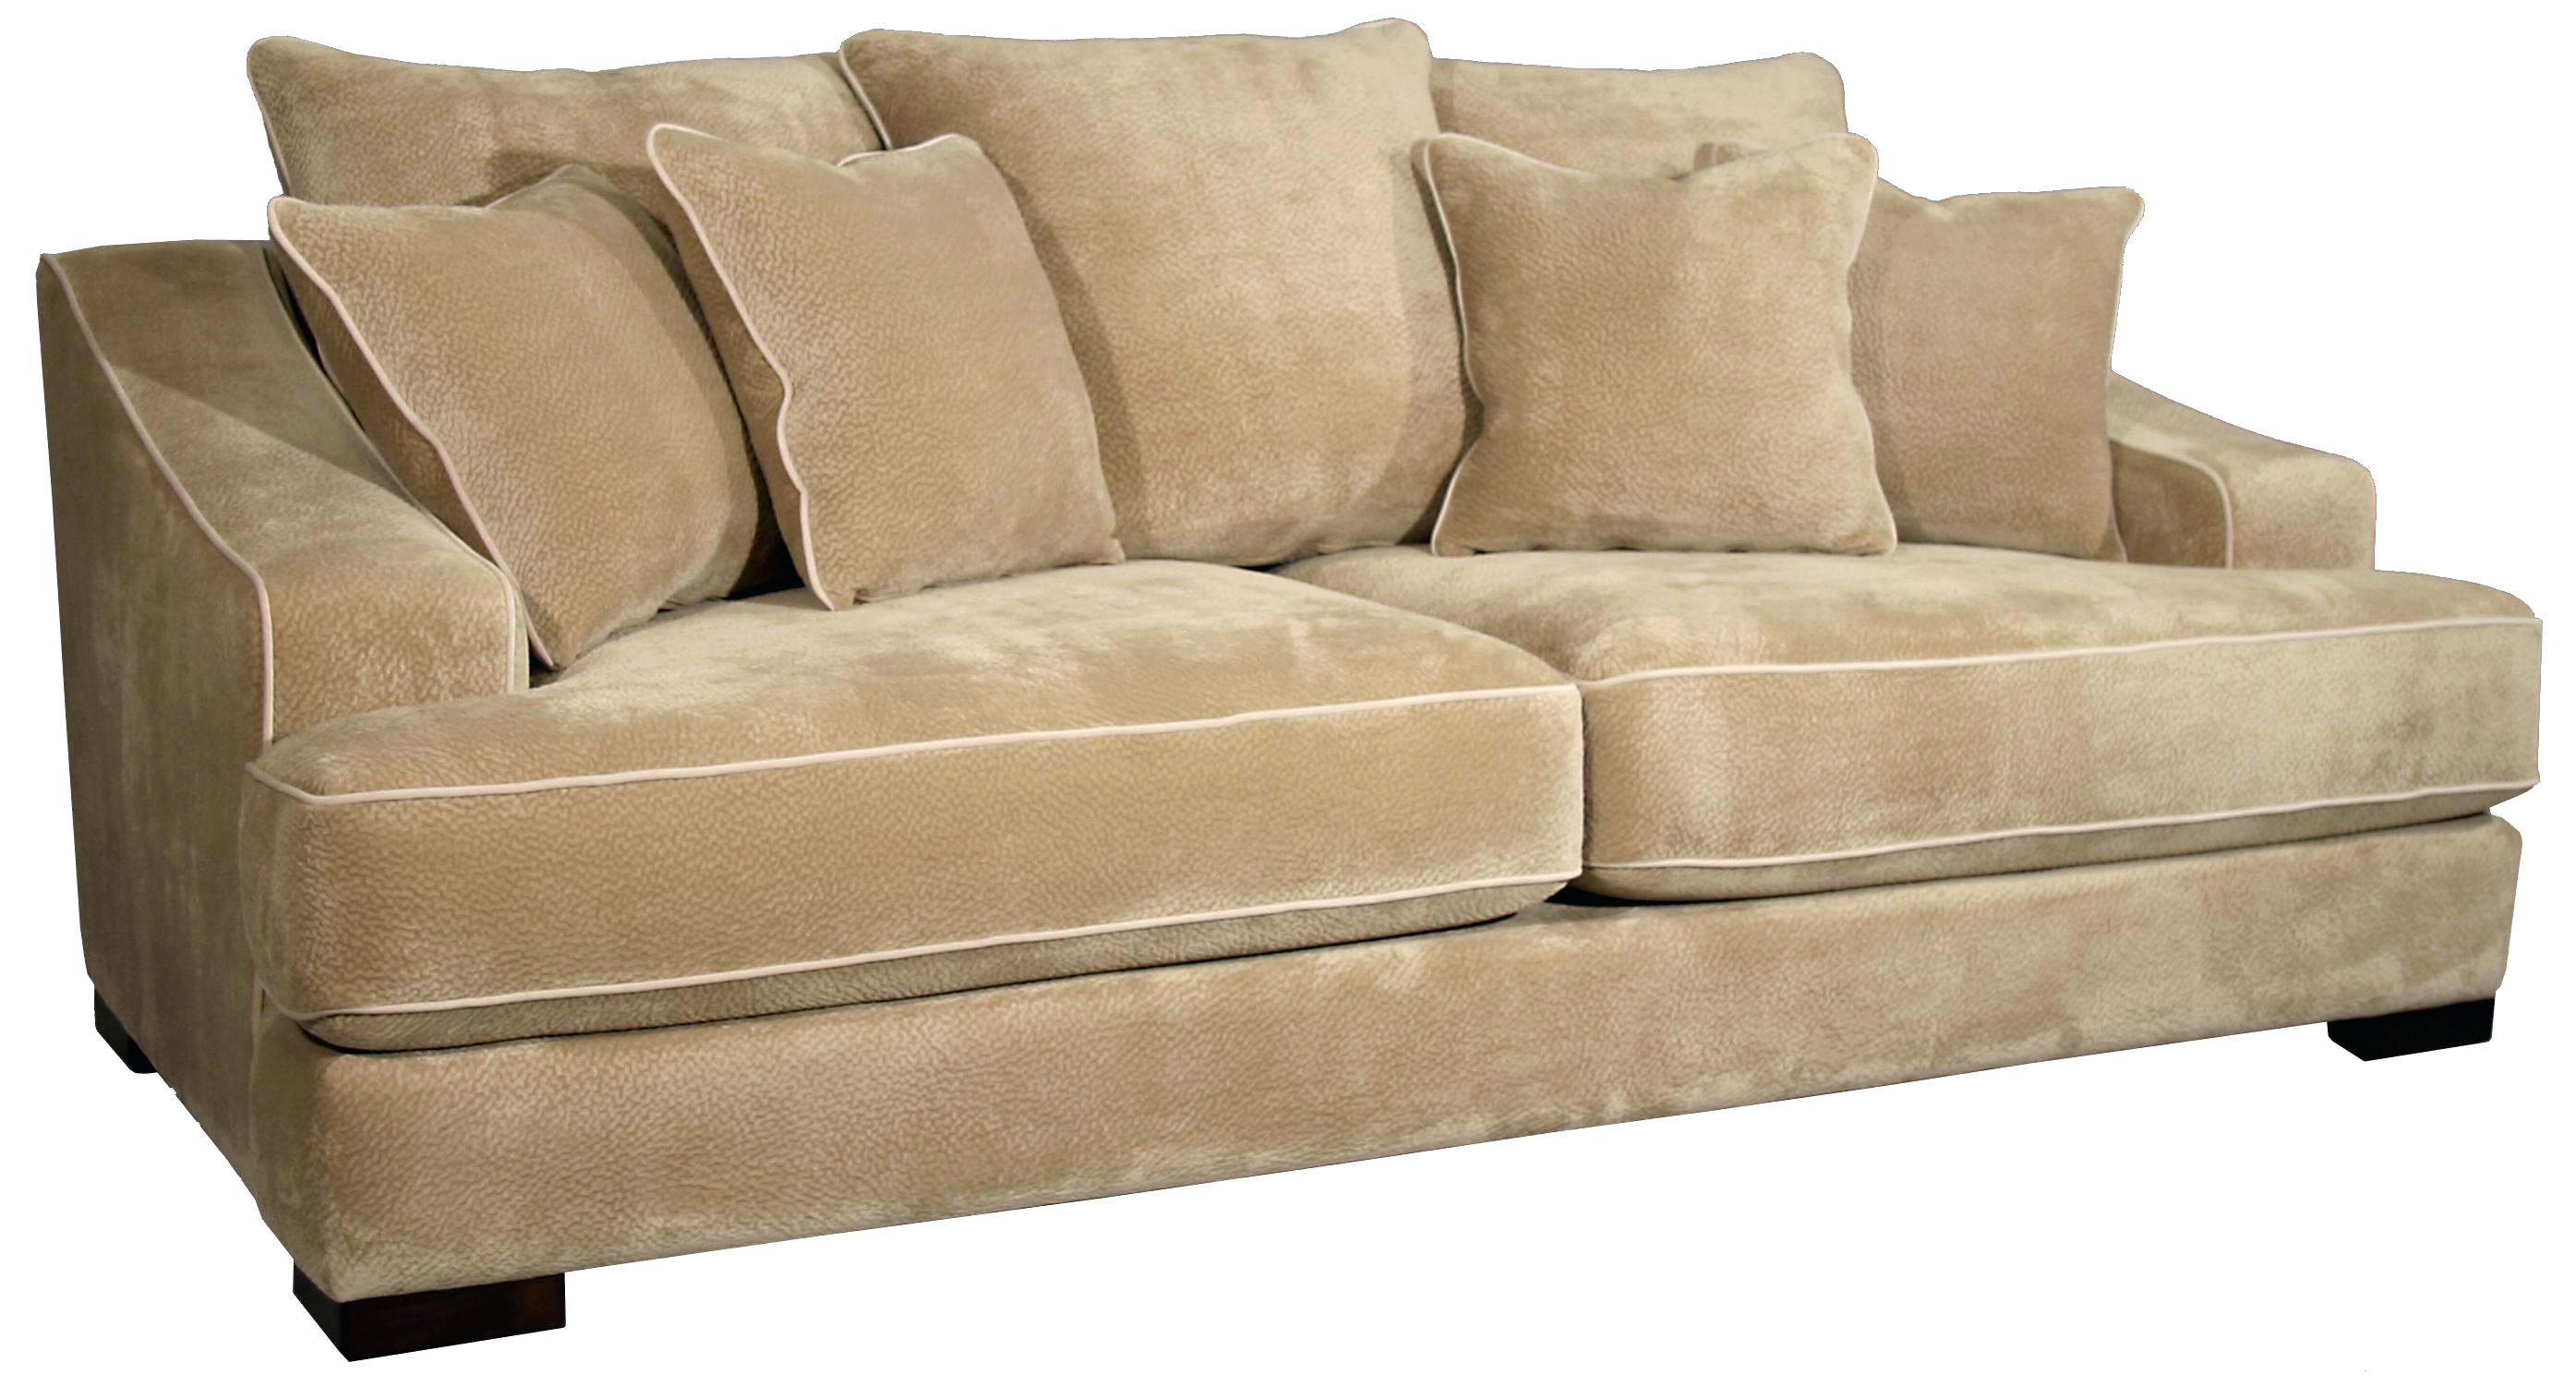 guildcraft furniture designs cooper minx mocha stationary sofa with back toss pillows american guild craft furniture